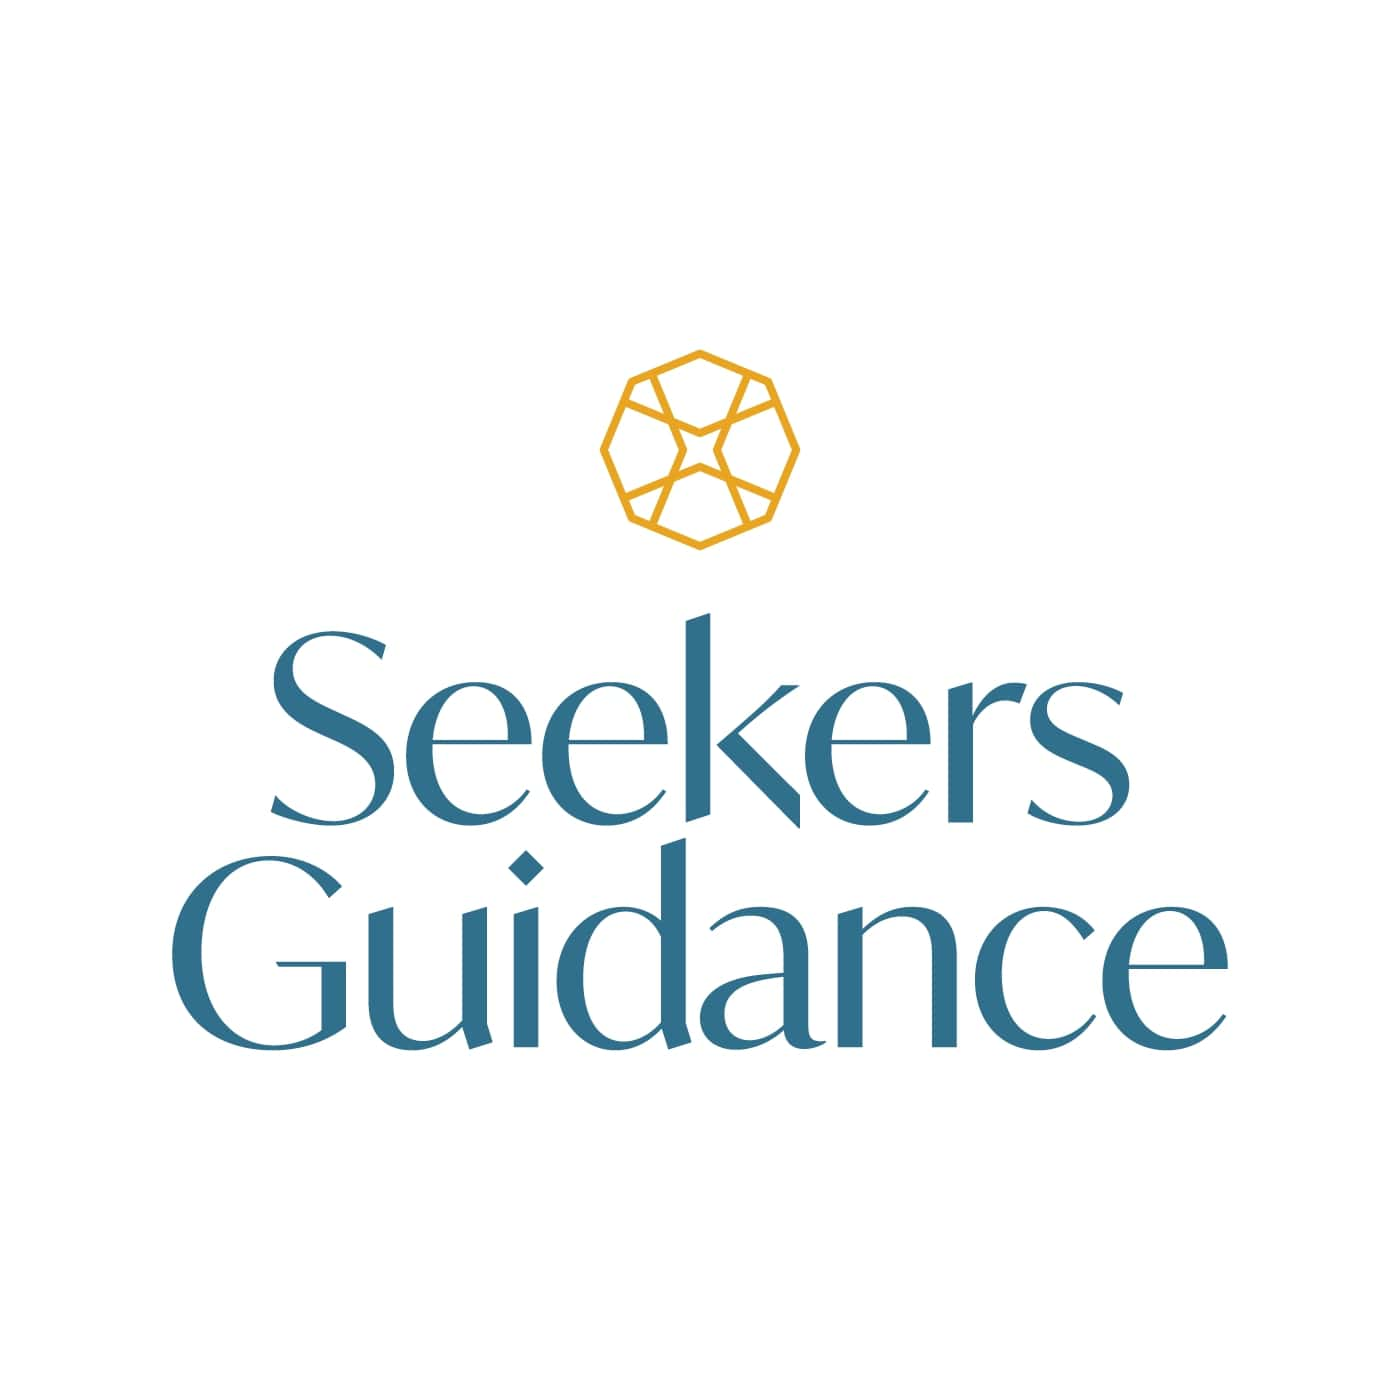 SeekersGuidance Podcast - Islam, Islamic Knowledge, Quran, and the guidance of the Prophet Muhammad